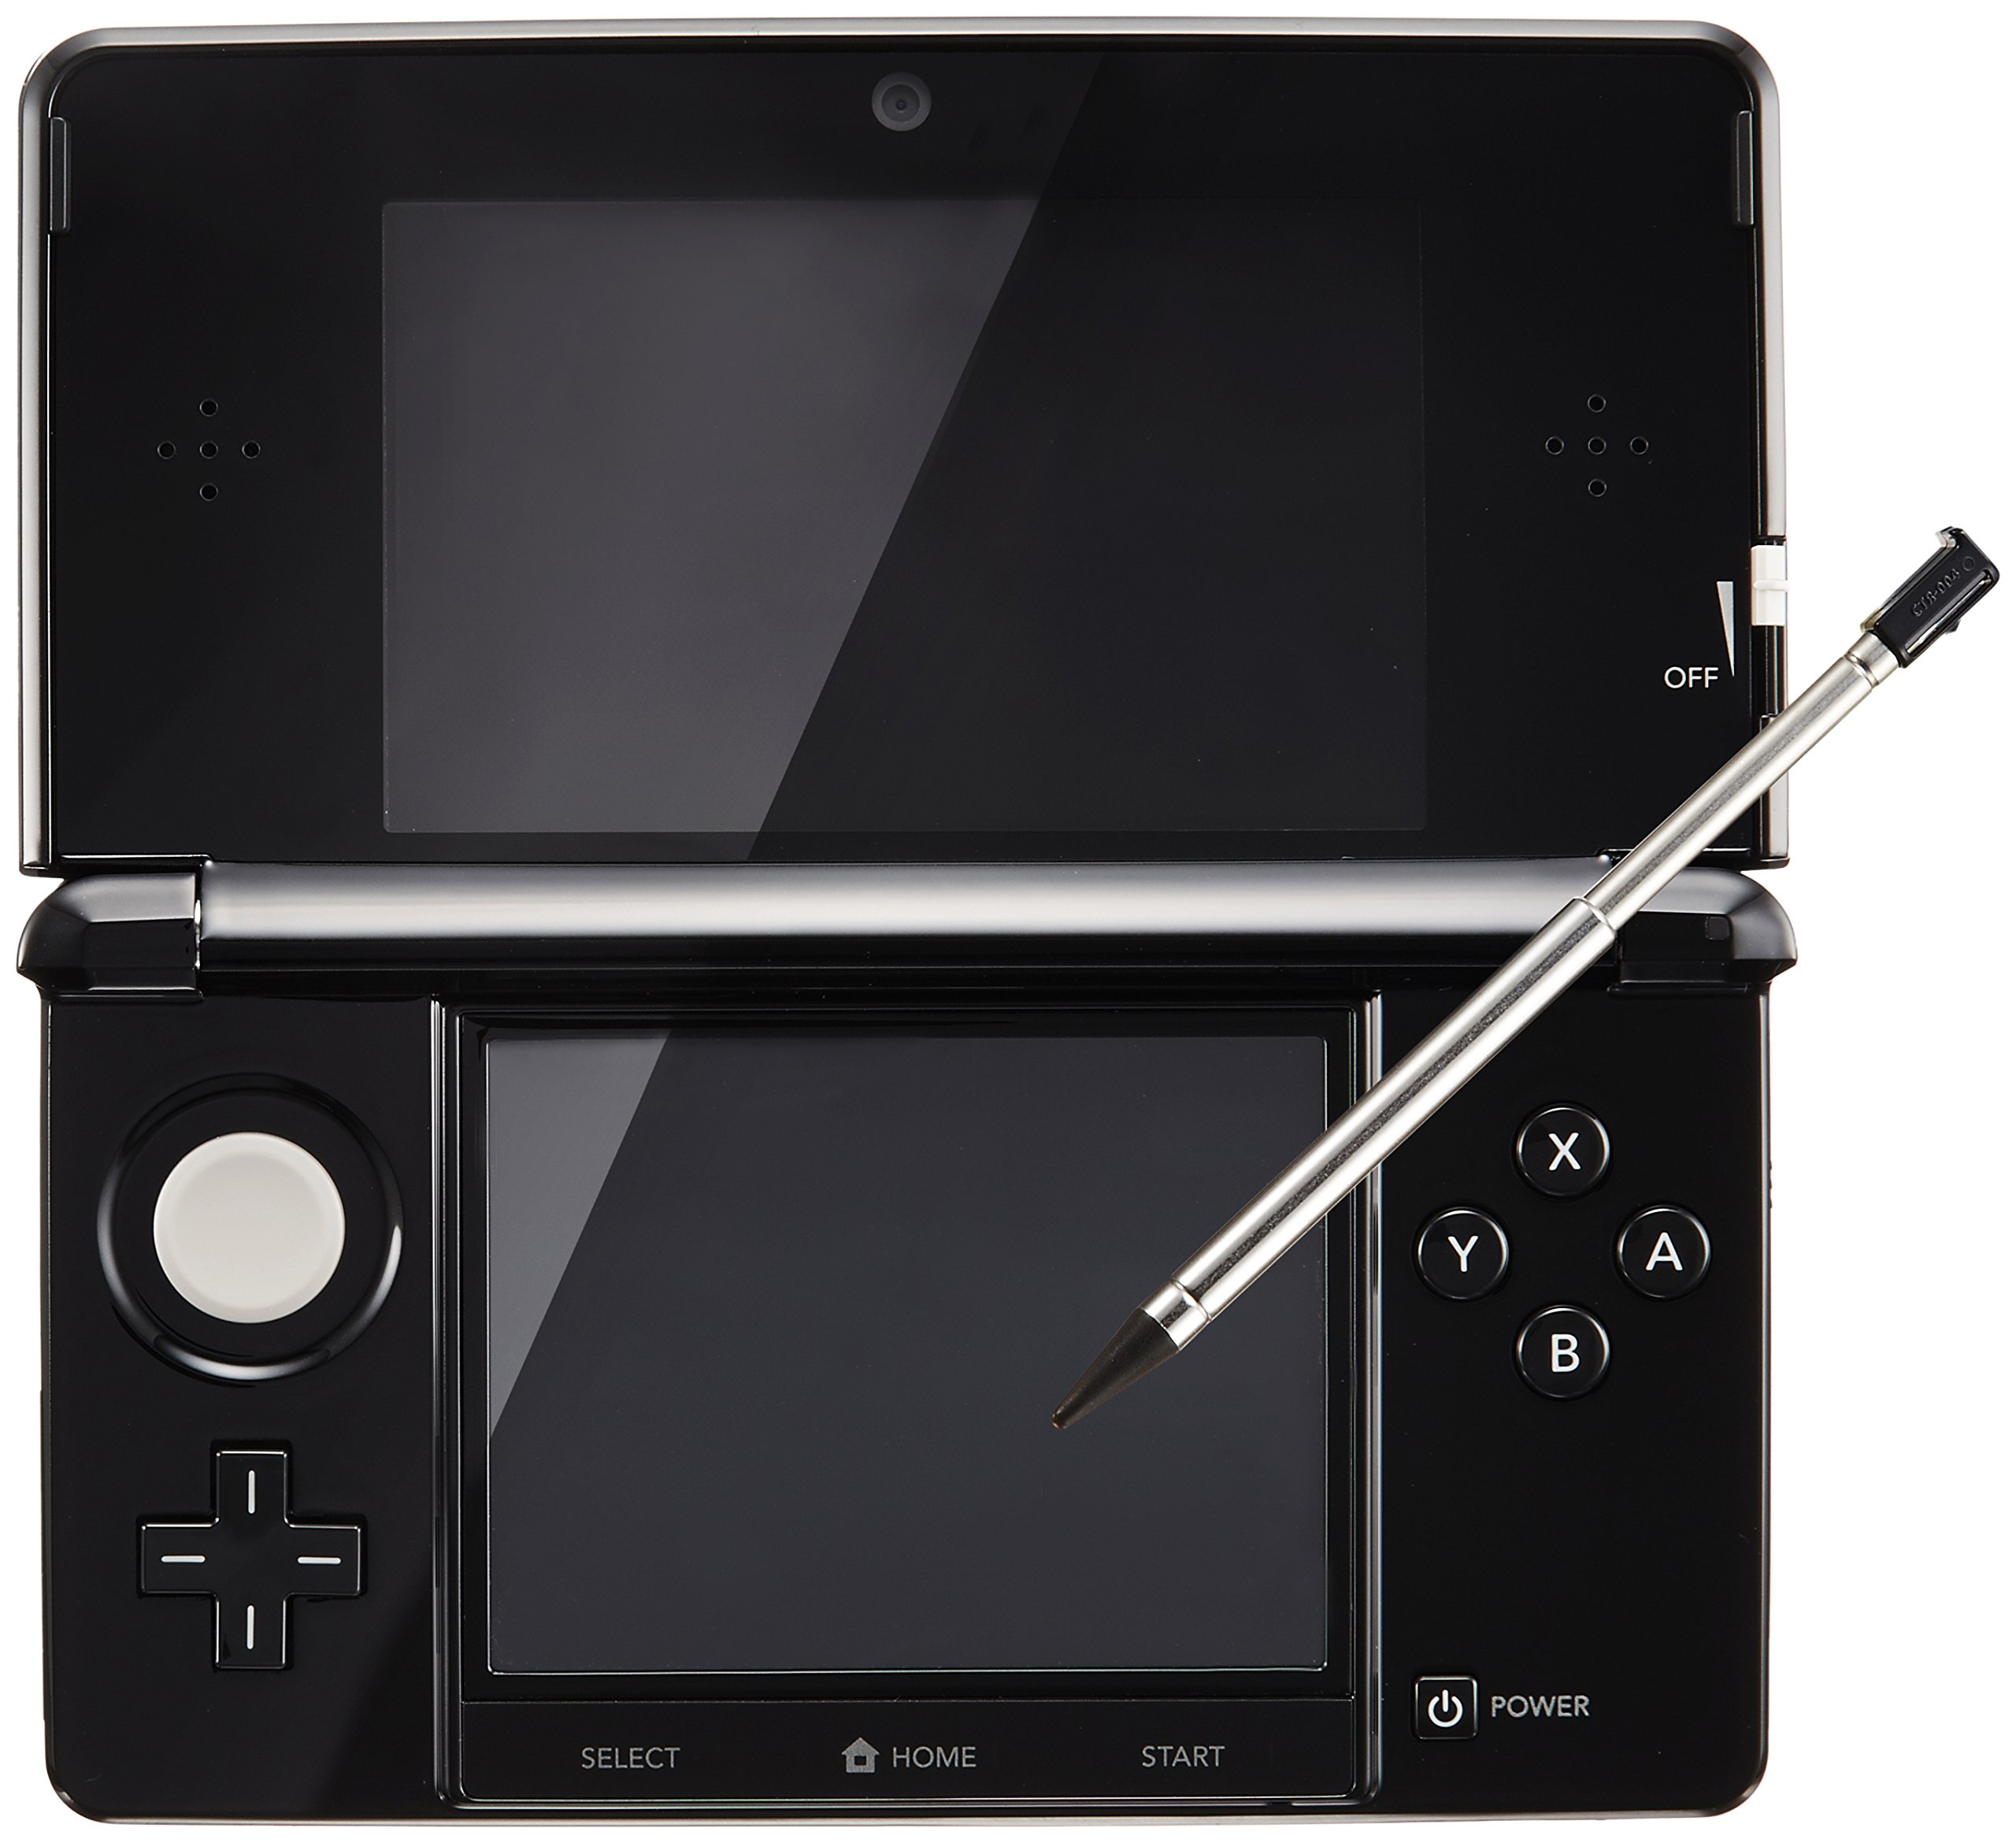 Nintendo 3DS clear black (Japanese Imported Version - only plays Japanese version games) by Nintendo (Image #1)